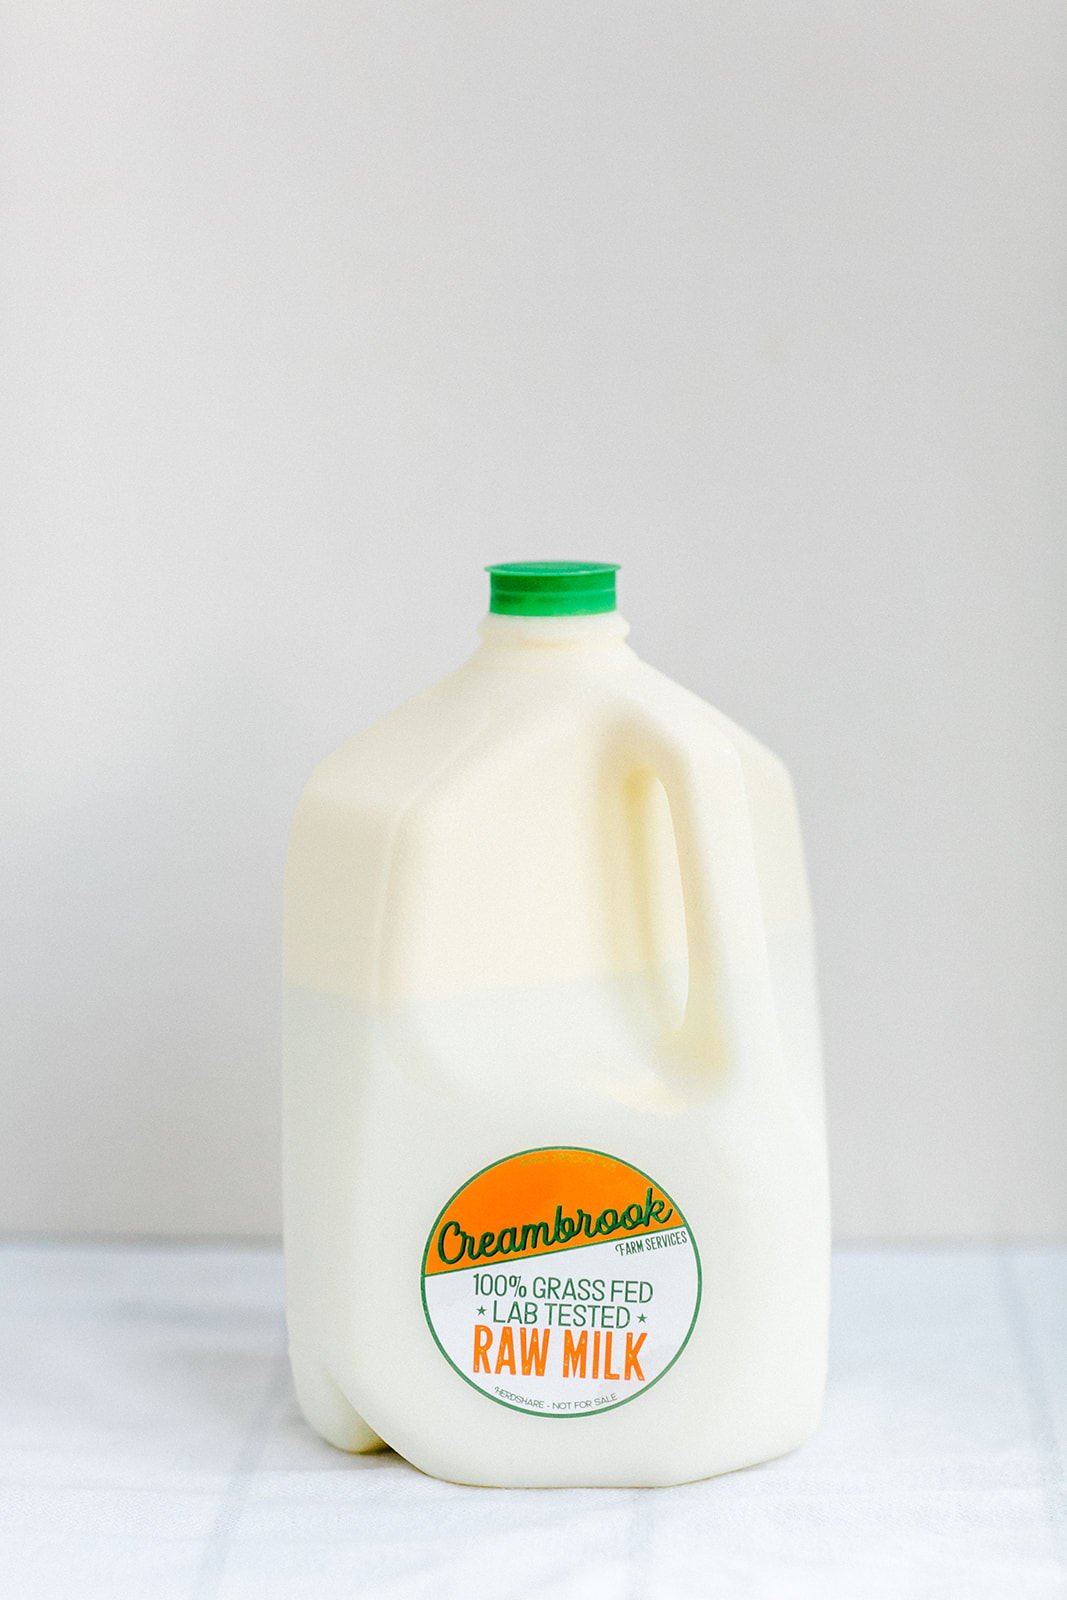 1 Share. One gallon of milk every week.